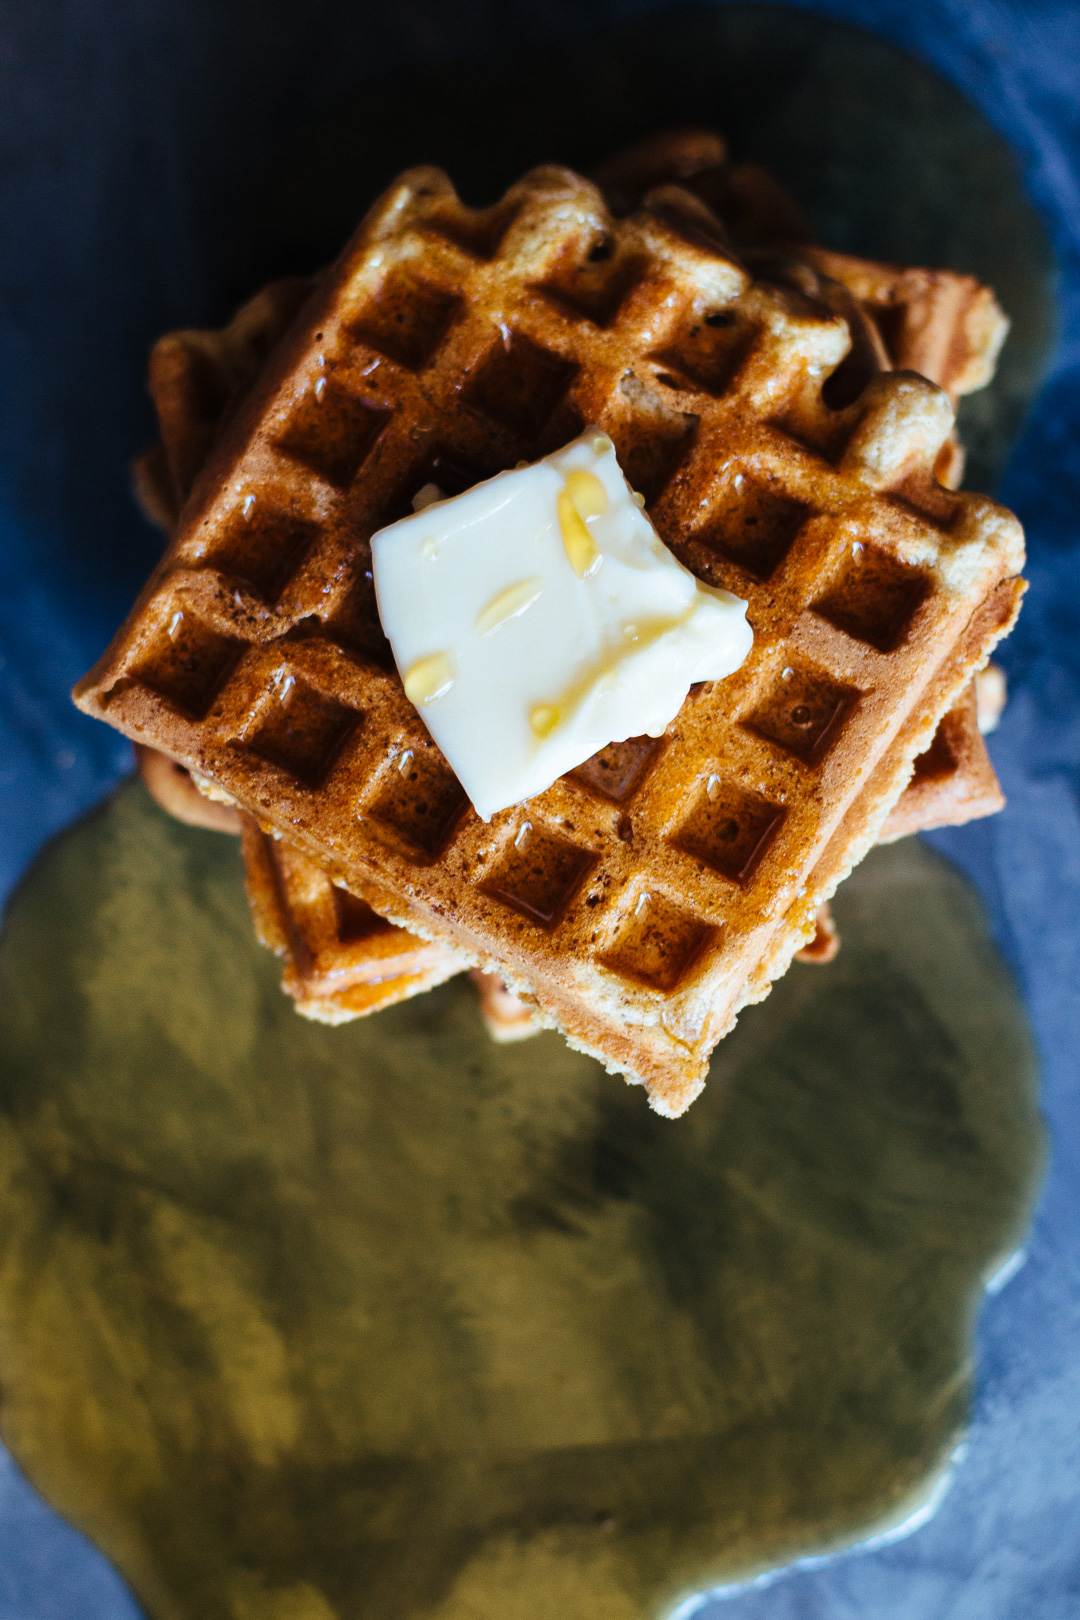 Overhead shot of a stack of waffles with a pat of butter on top and drizzled with maple syrup.